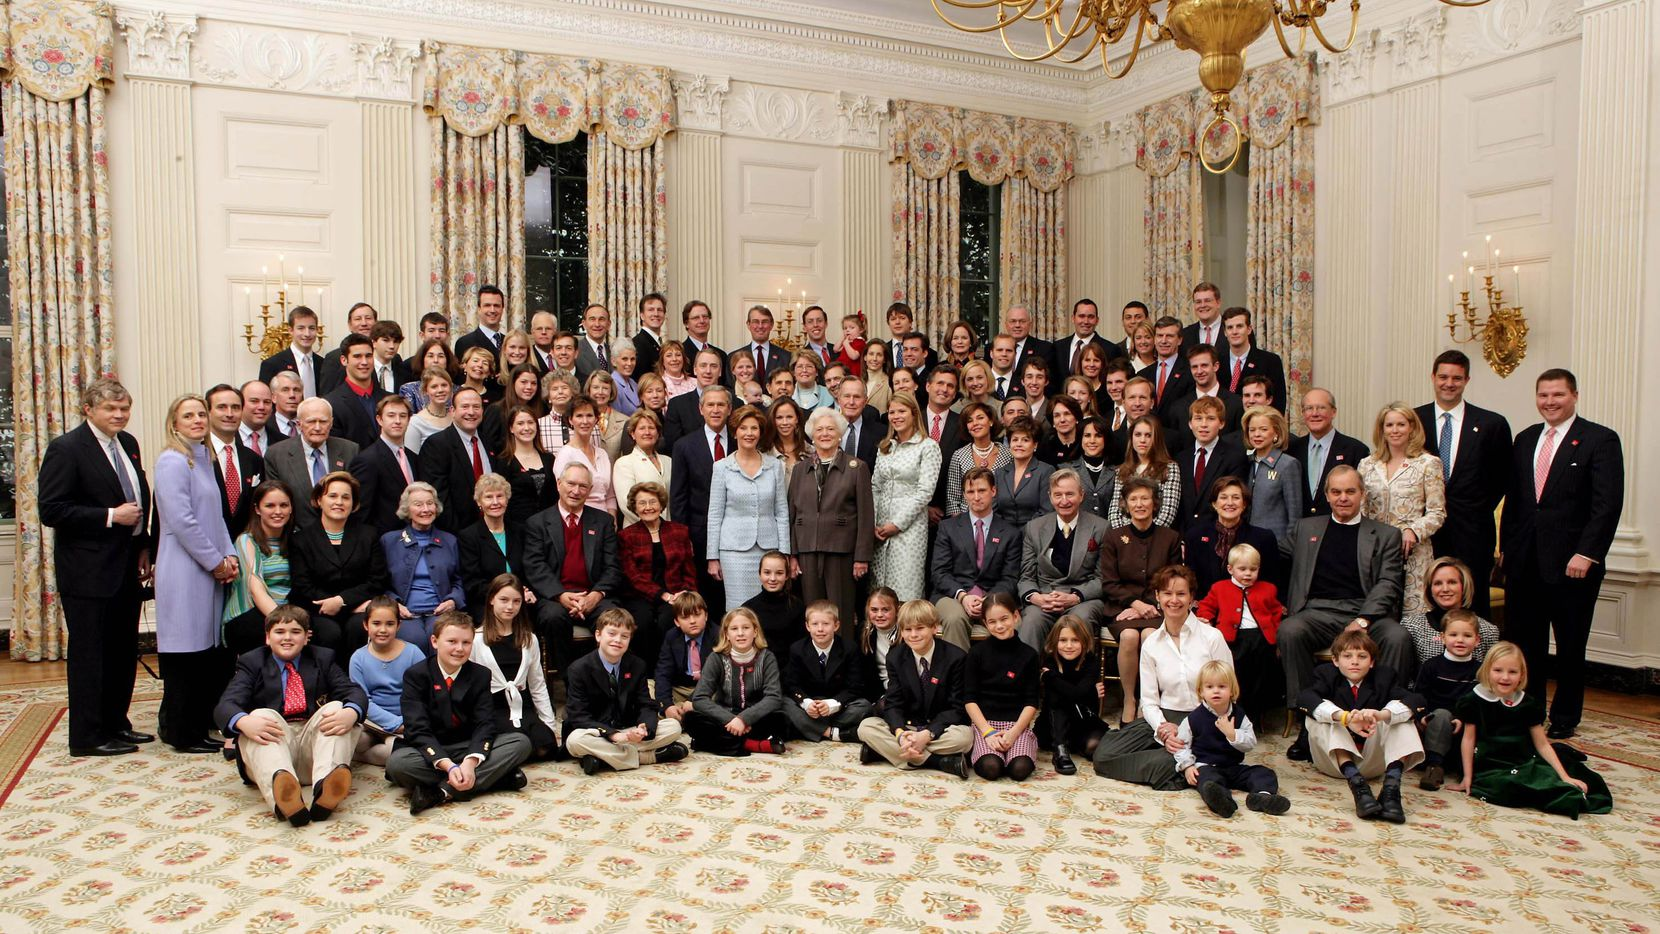 2005: President George W. Bush, Laura Bush, former President George H. W. Bush, and former first lady Barbara Bush pose for a portrait with members of their extended family in the East Room of the White House.